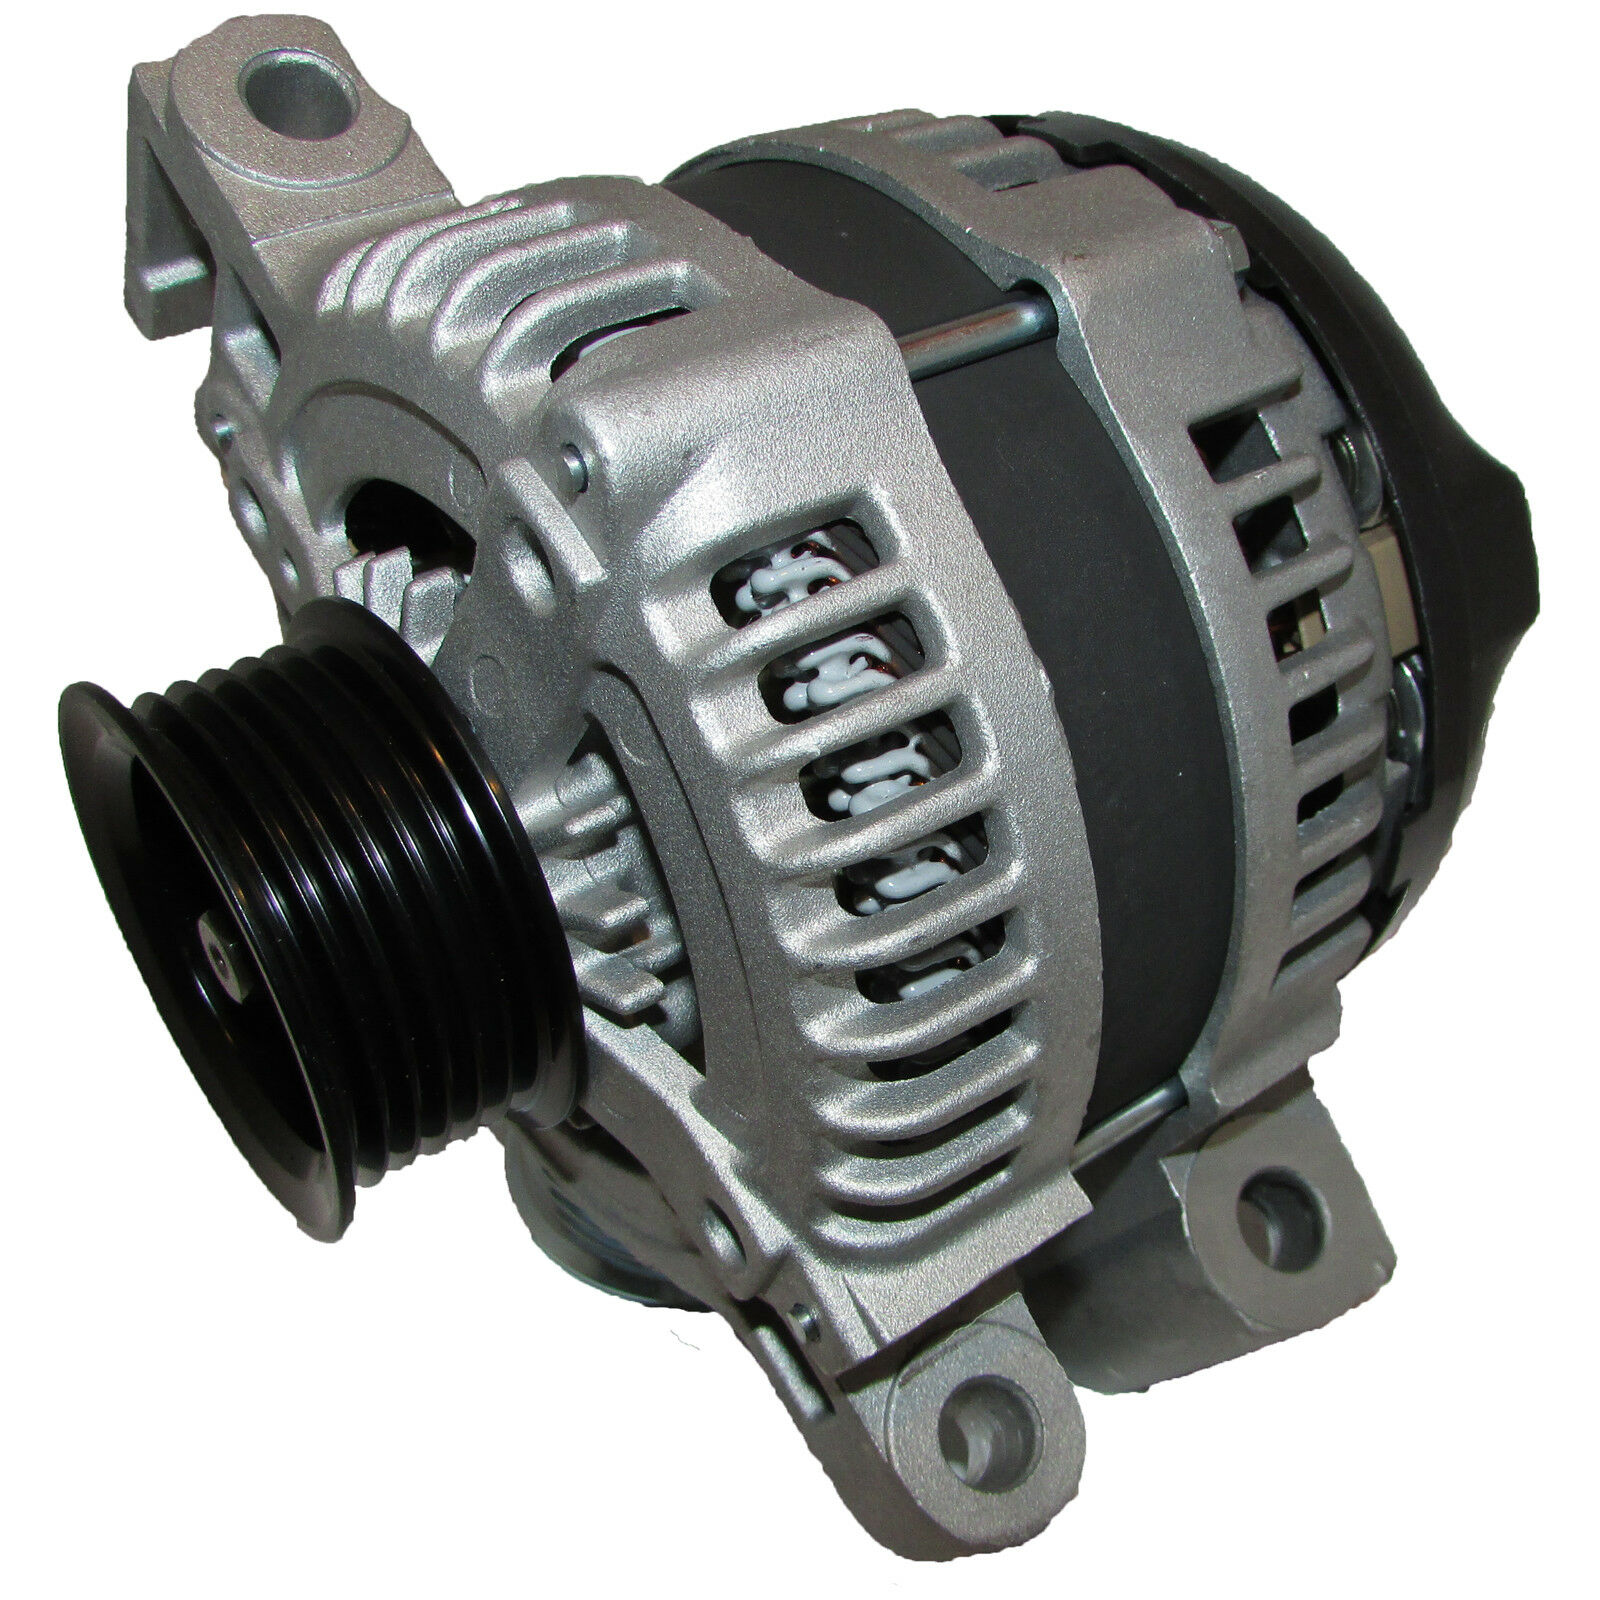 New High Output 250amp Alternator For Cadillac Cts 36l 30l Wiring 86 Oldsmobile Delta 88 Chevy 1 Of 2free Shipping